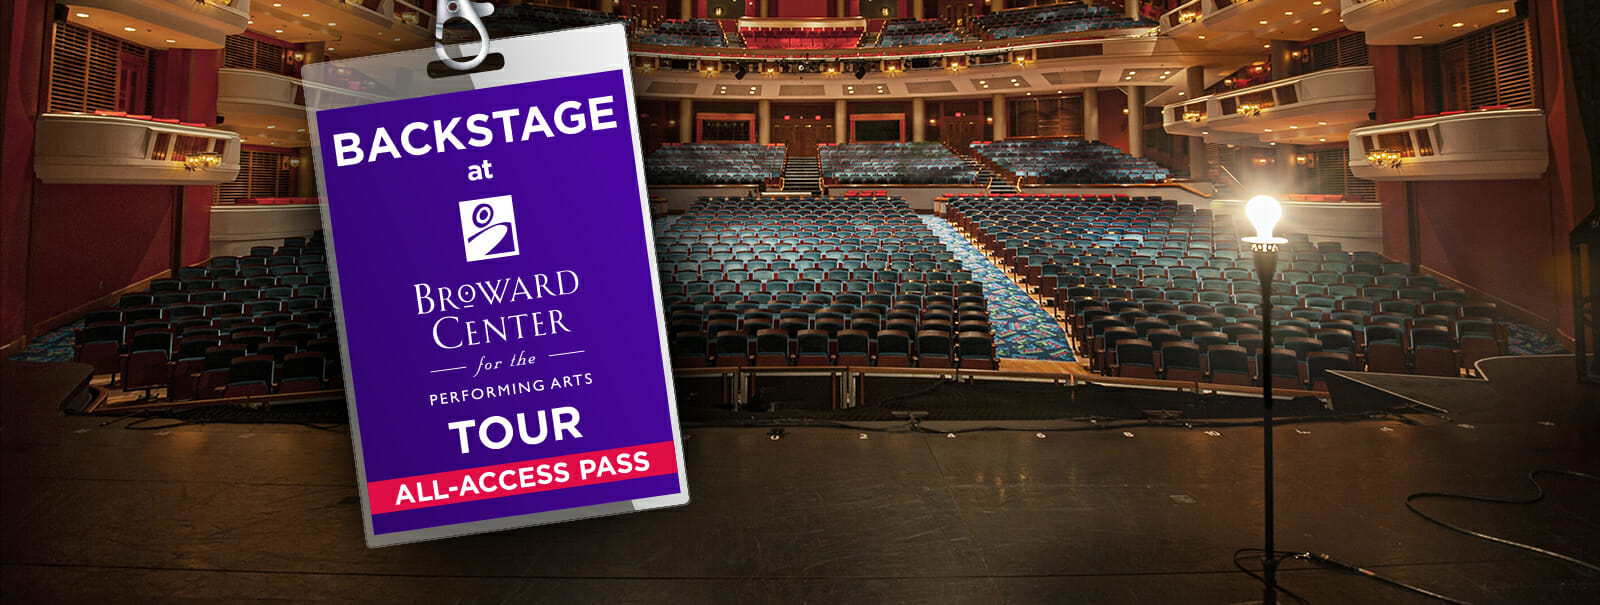 """The New """"Backstage at Broward Center"""" Tour is an Invite to Fans to """"Take Their Shot"""" and Star in their Own Onstage Photo Opp"""